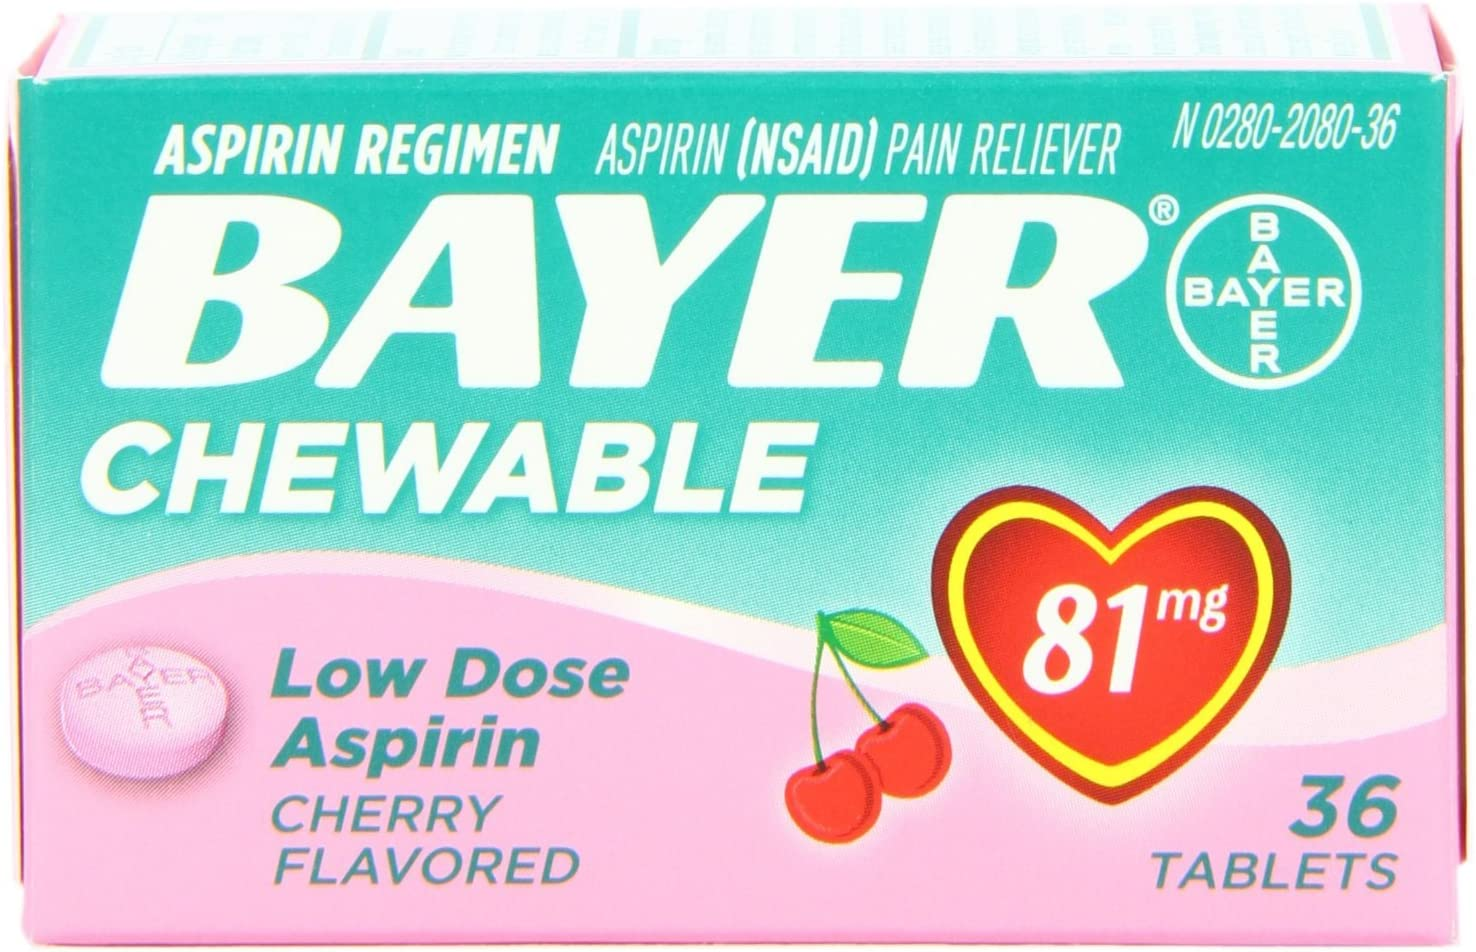 Bayer Chewable Max 75% OFF Low Dose Seattle Mall 3 Cherry Count Aspirin